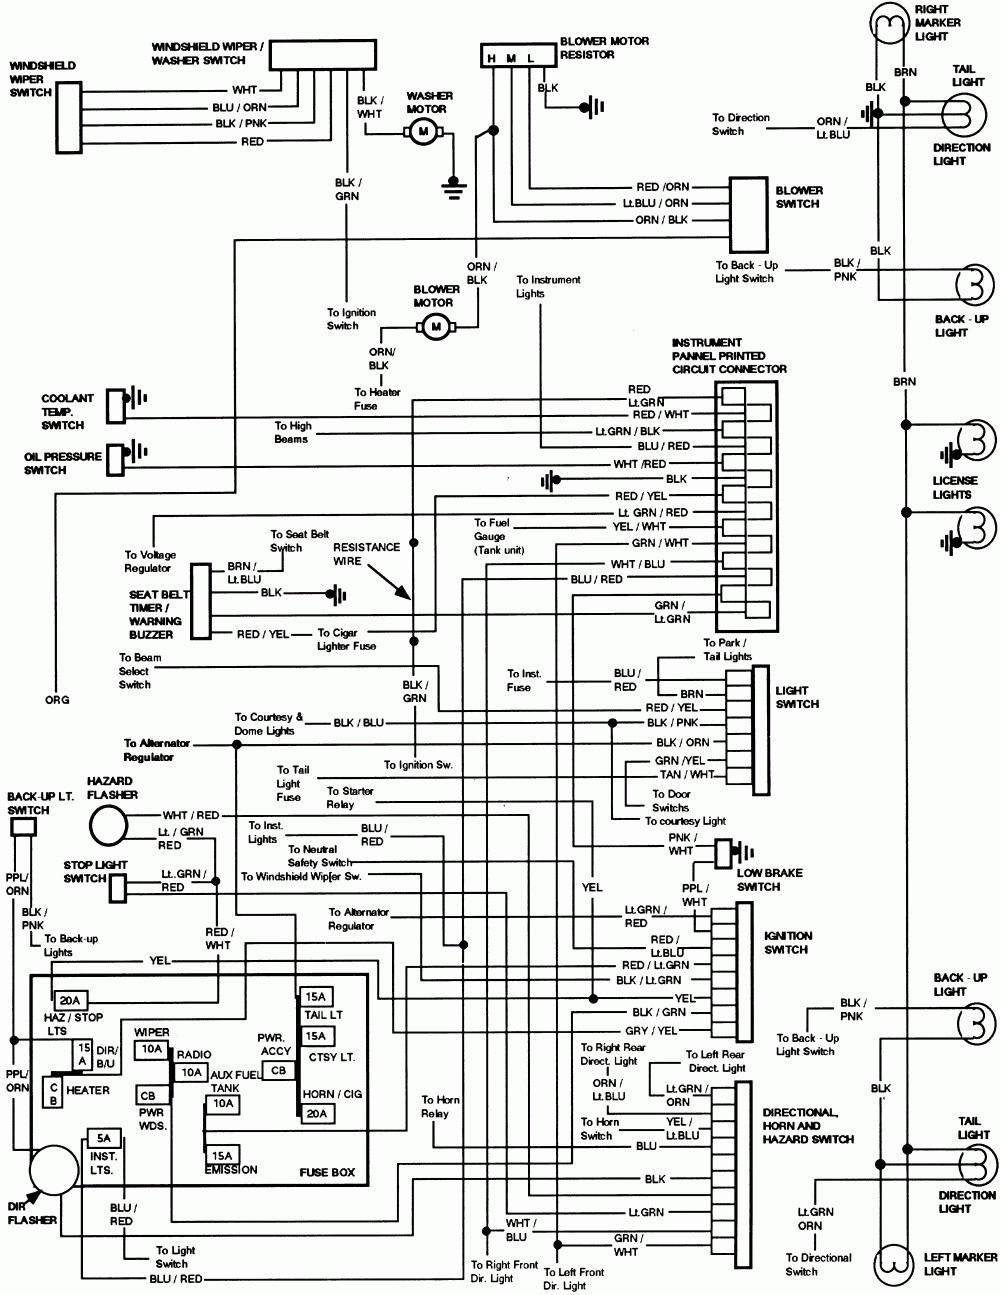 hight resolution of 1994 f 350 engine diagram wiring diagram new 1994 f 350 engine diagram